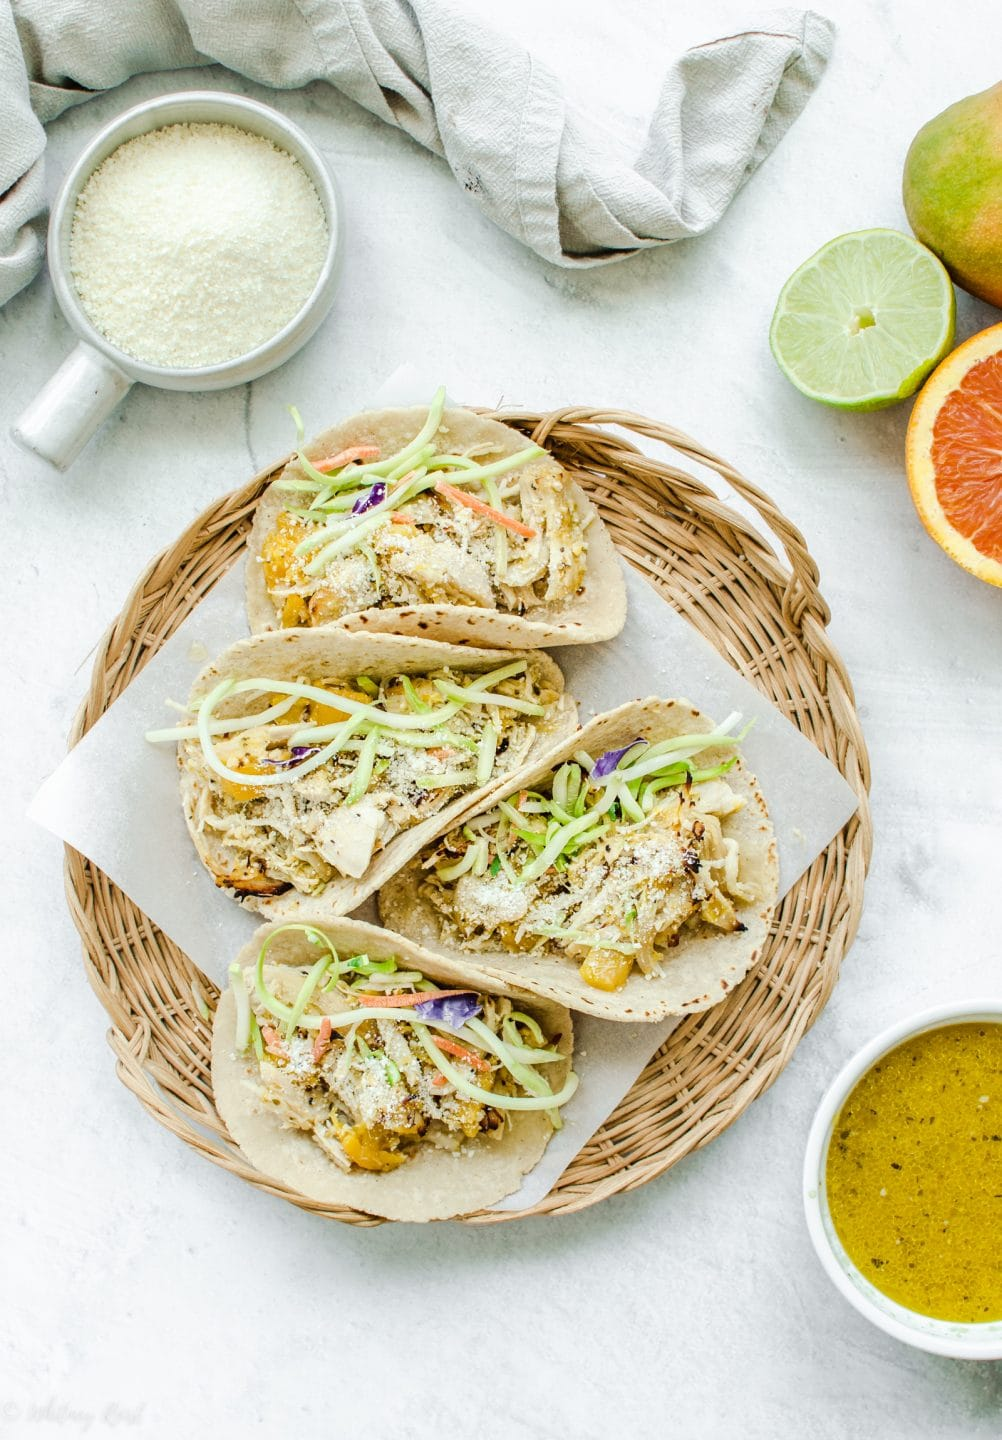 An overhead shot of a wicker charger with parchment paper and Mango Mojo Chicken Tacos with a side of mojo sauce and avocado ranch on the side.